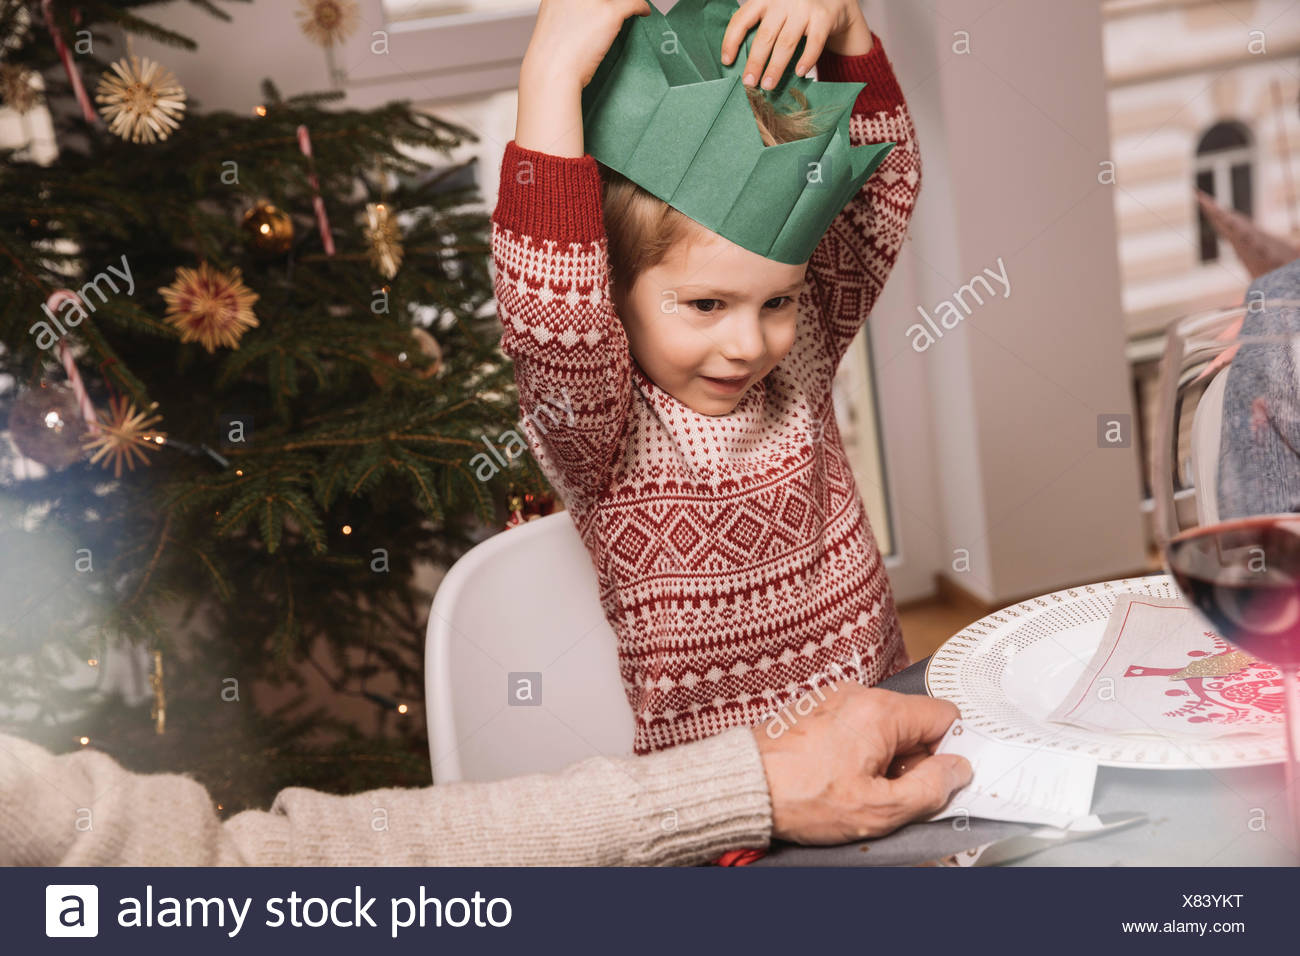 A Crown For Christmas.Boy Putting On His Paper Crown For Christmas Stock Photo